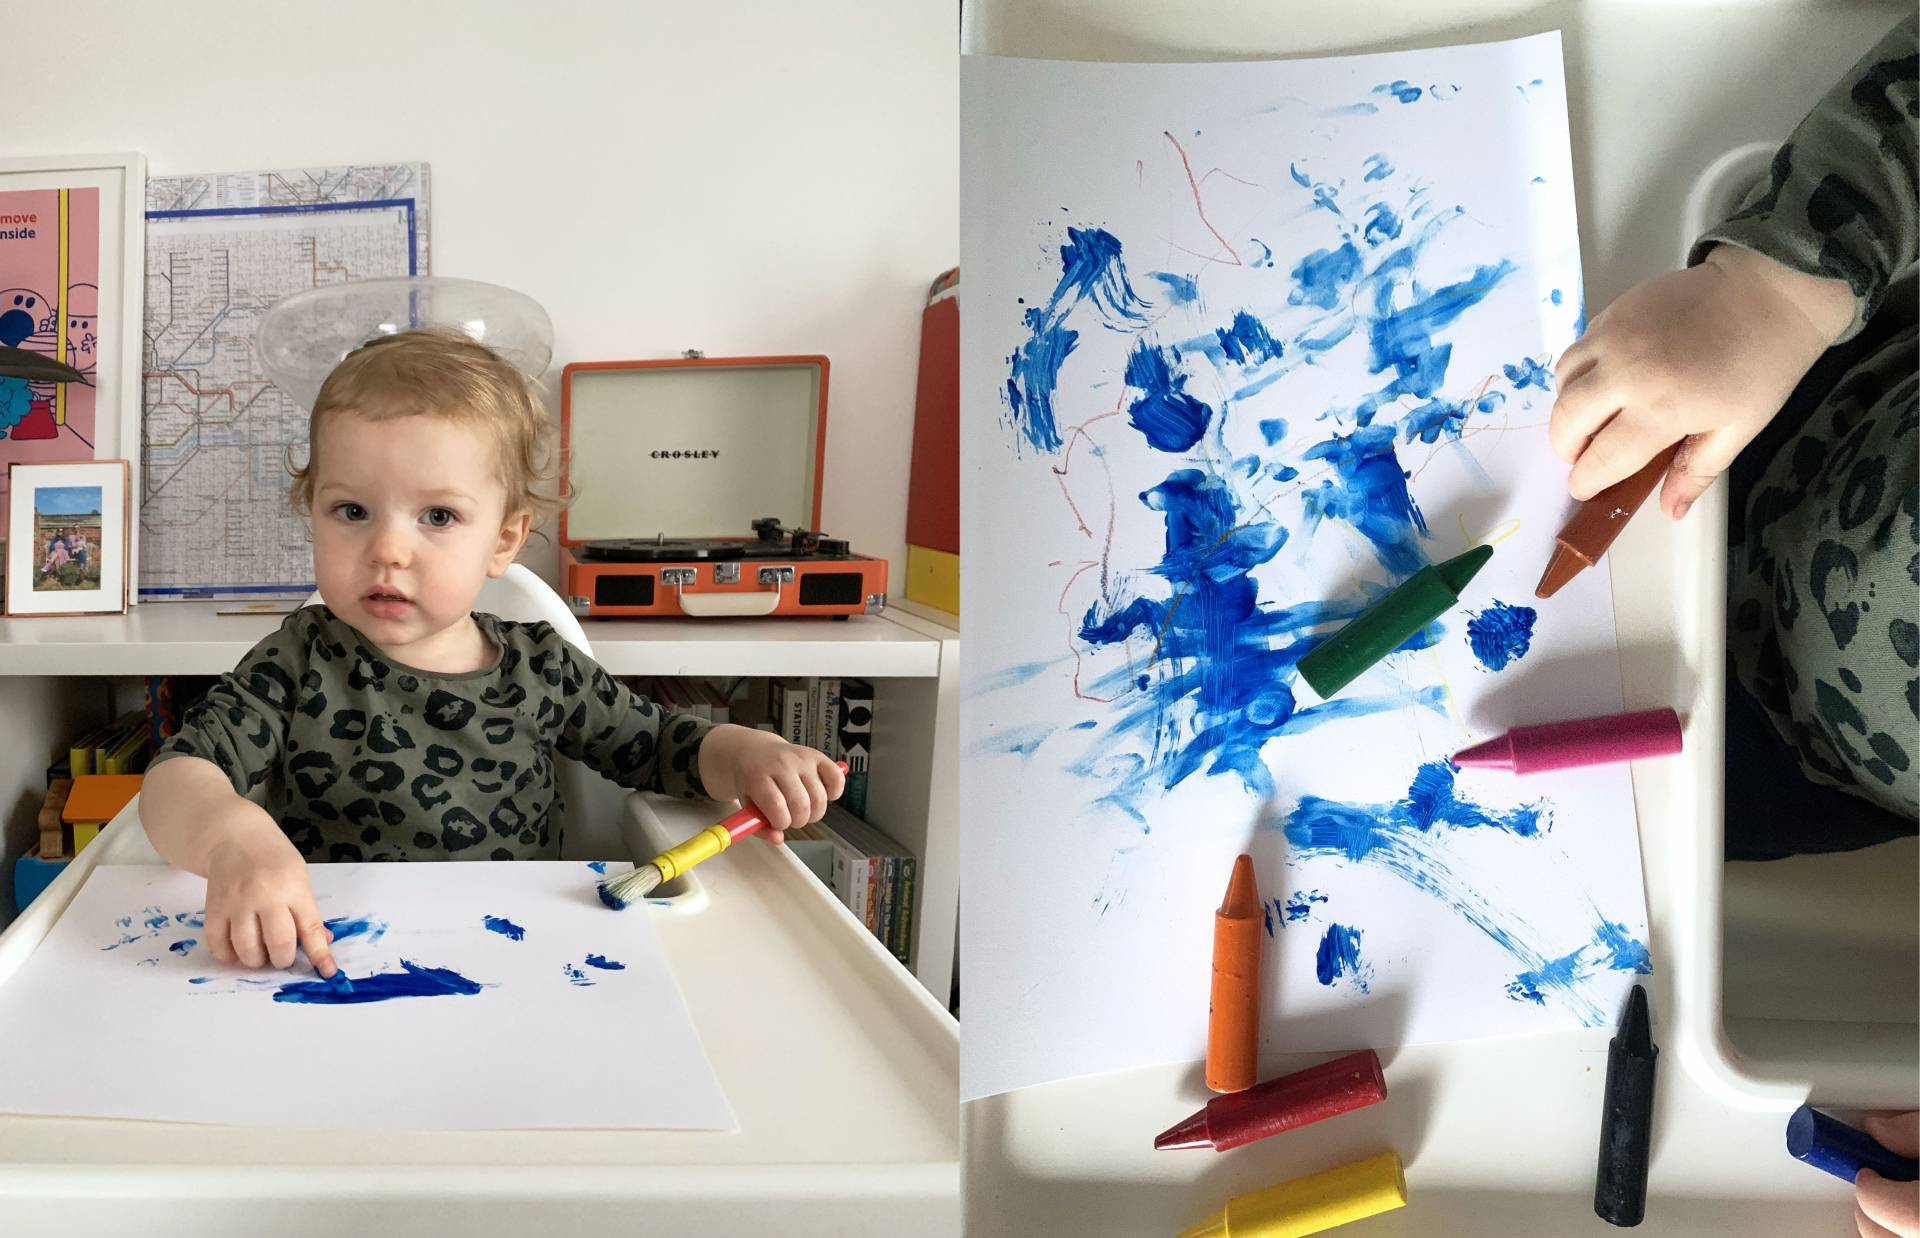 Abstract art by children